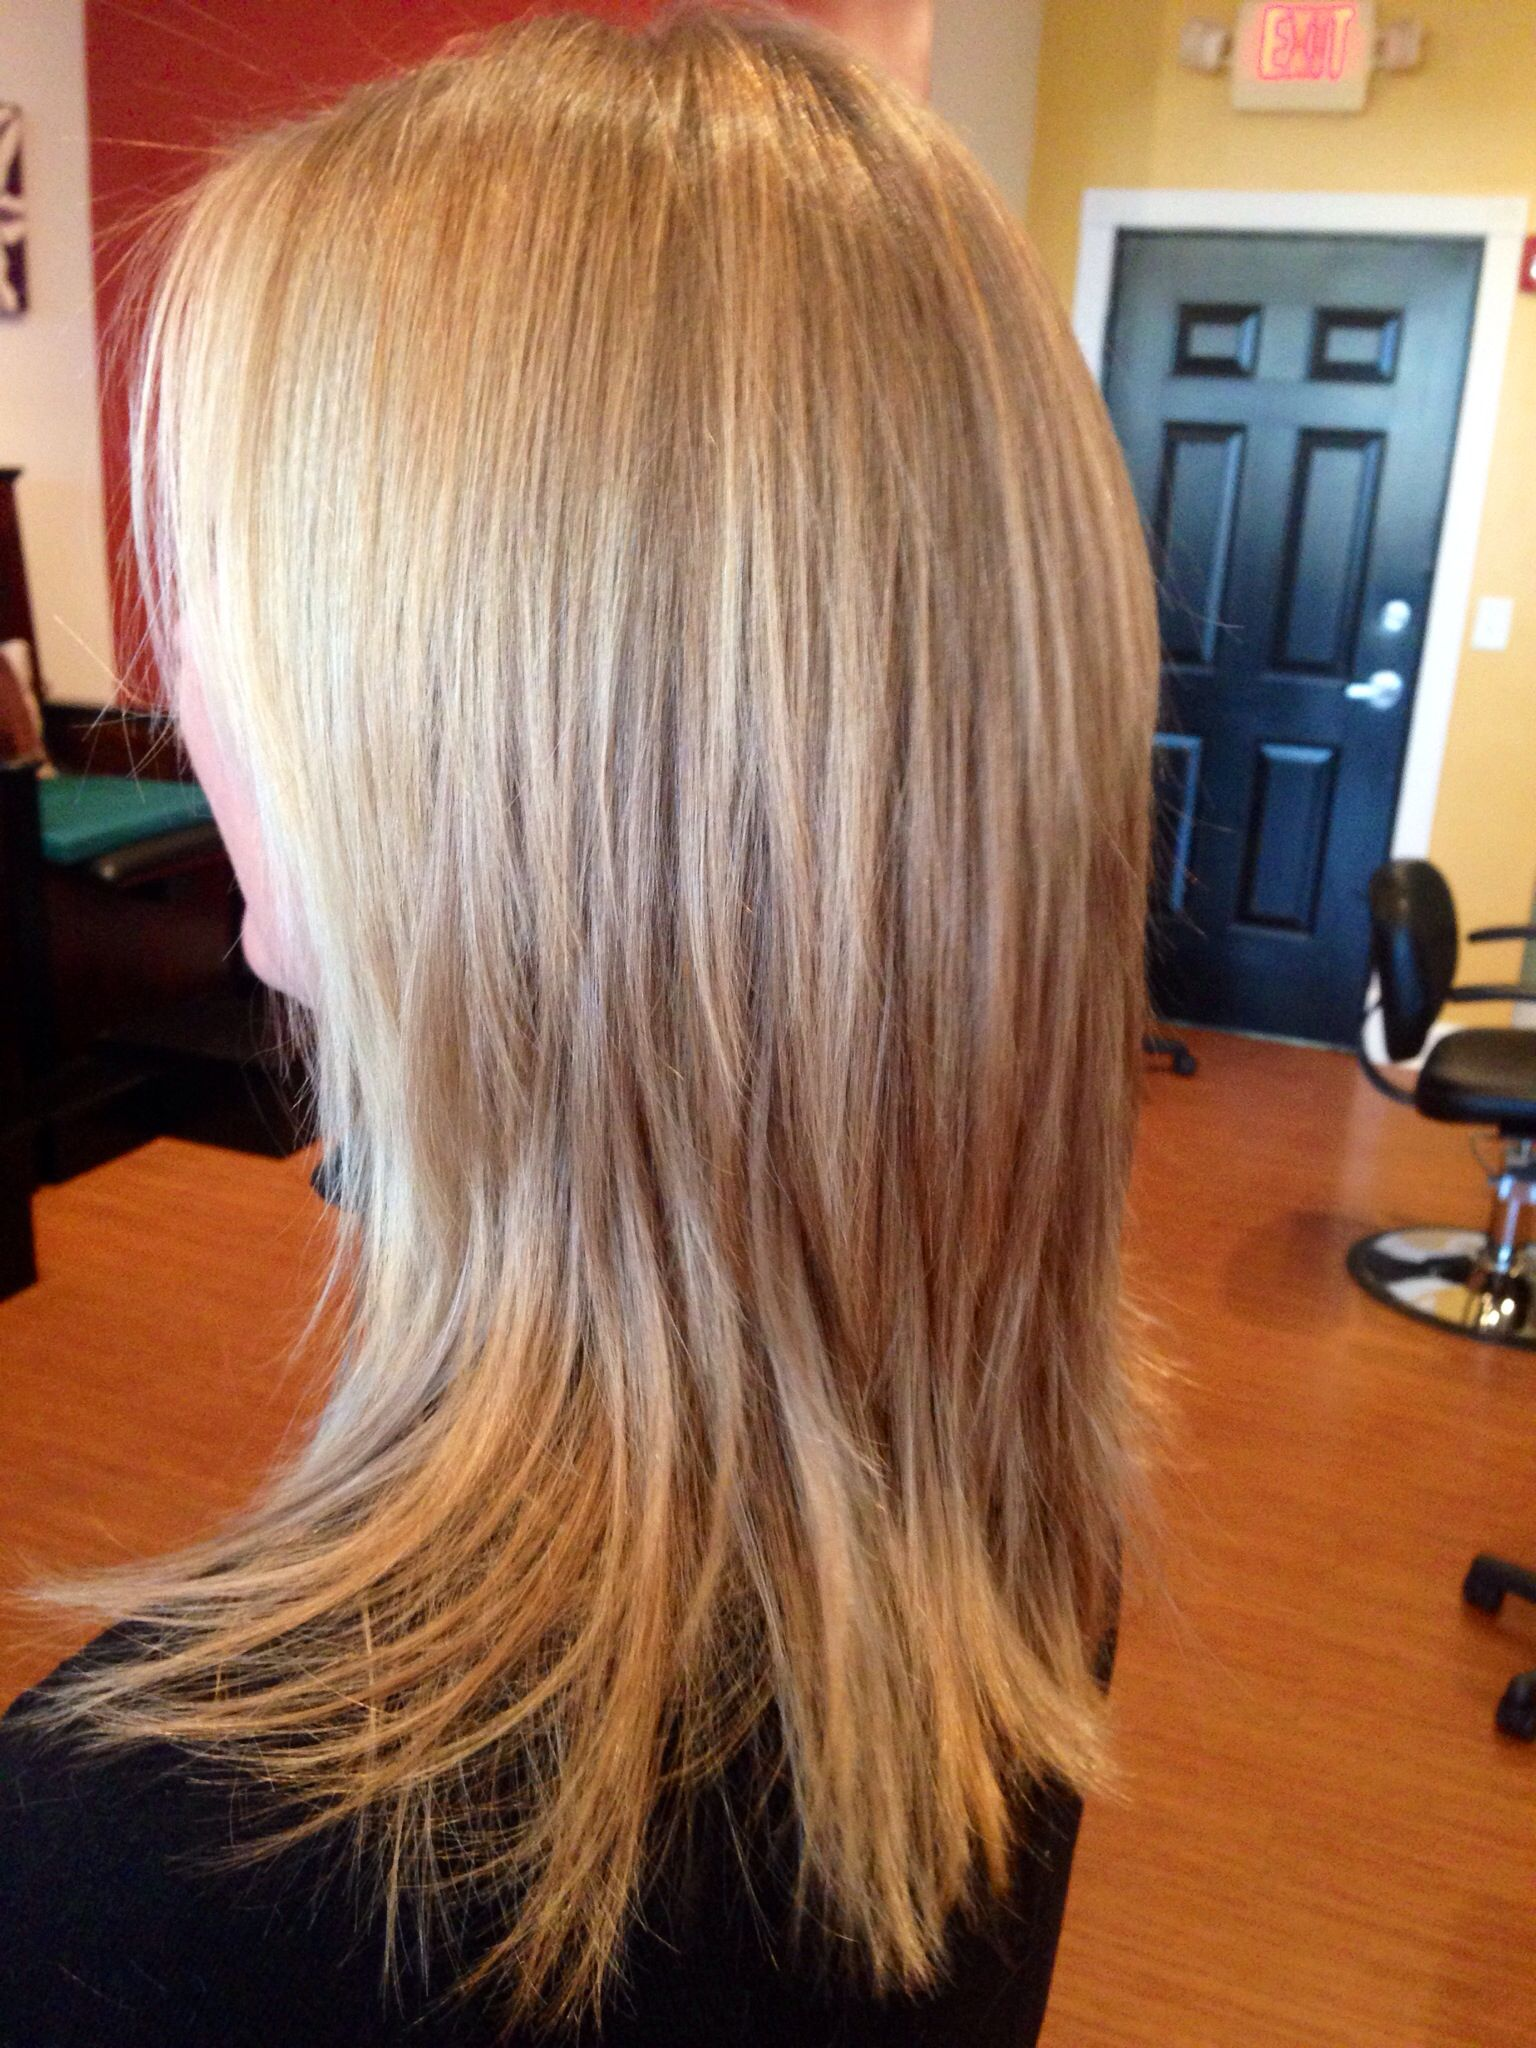 Cut color | hair styles and color | Pinterest | Hair style, Long ...